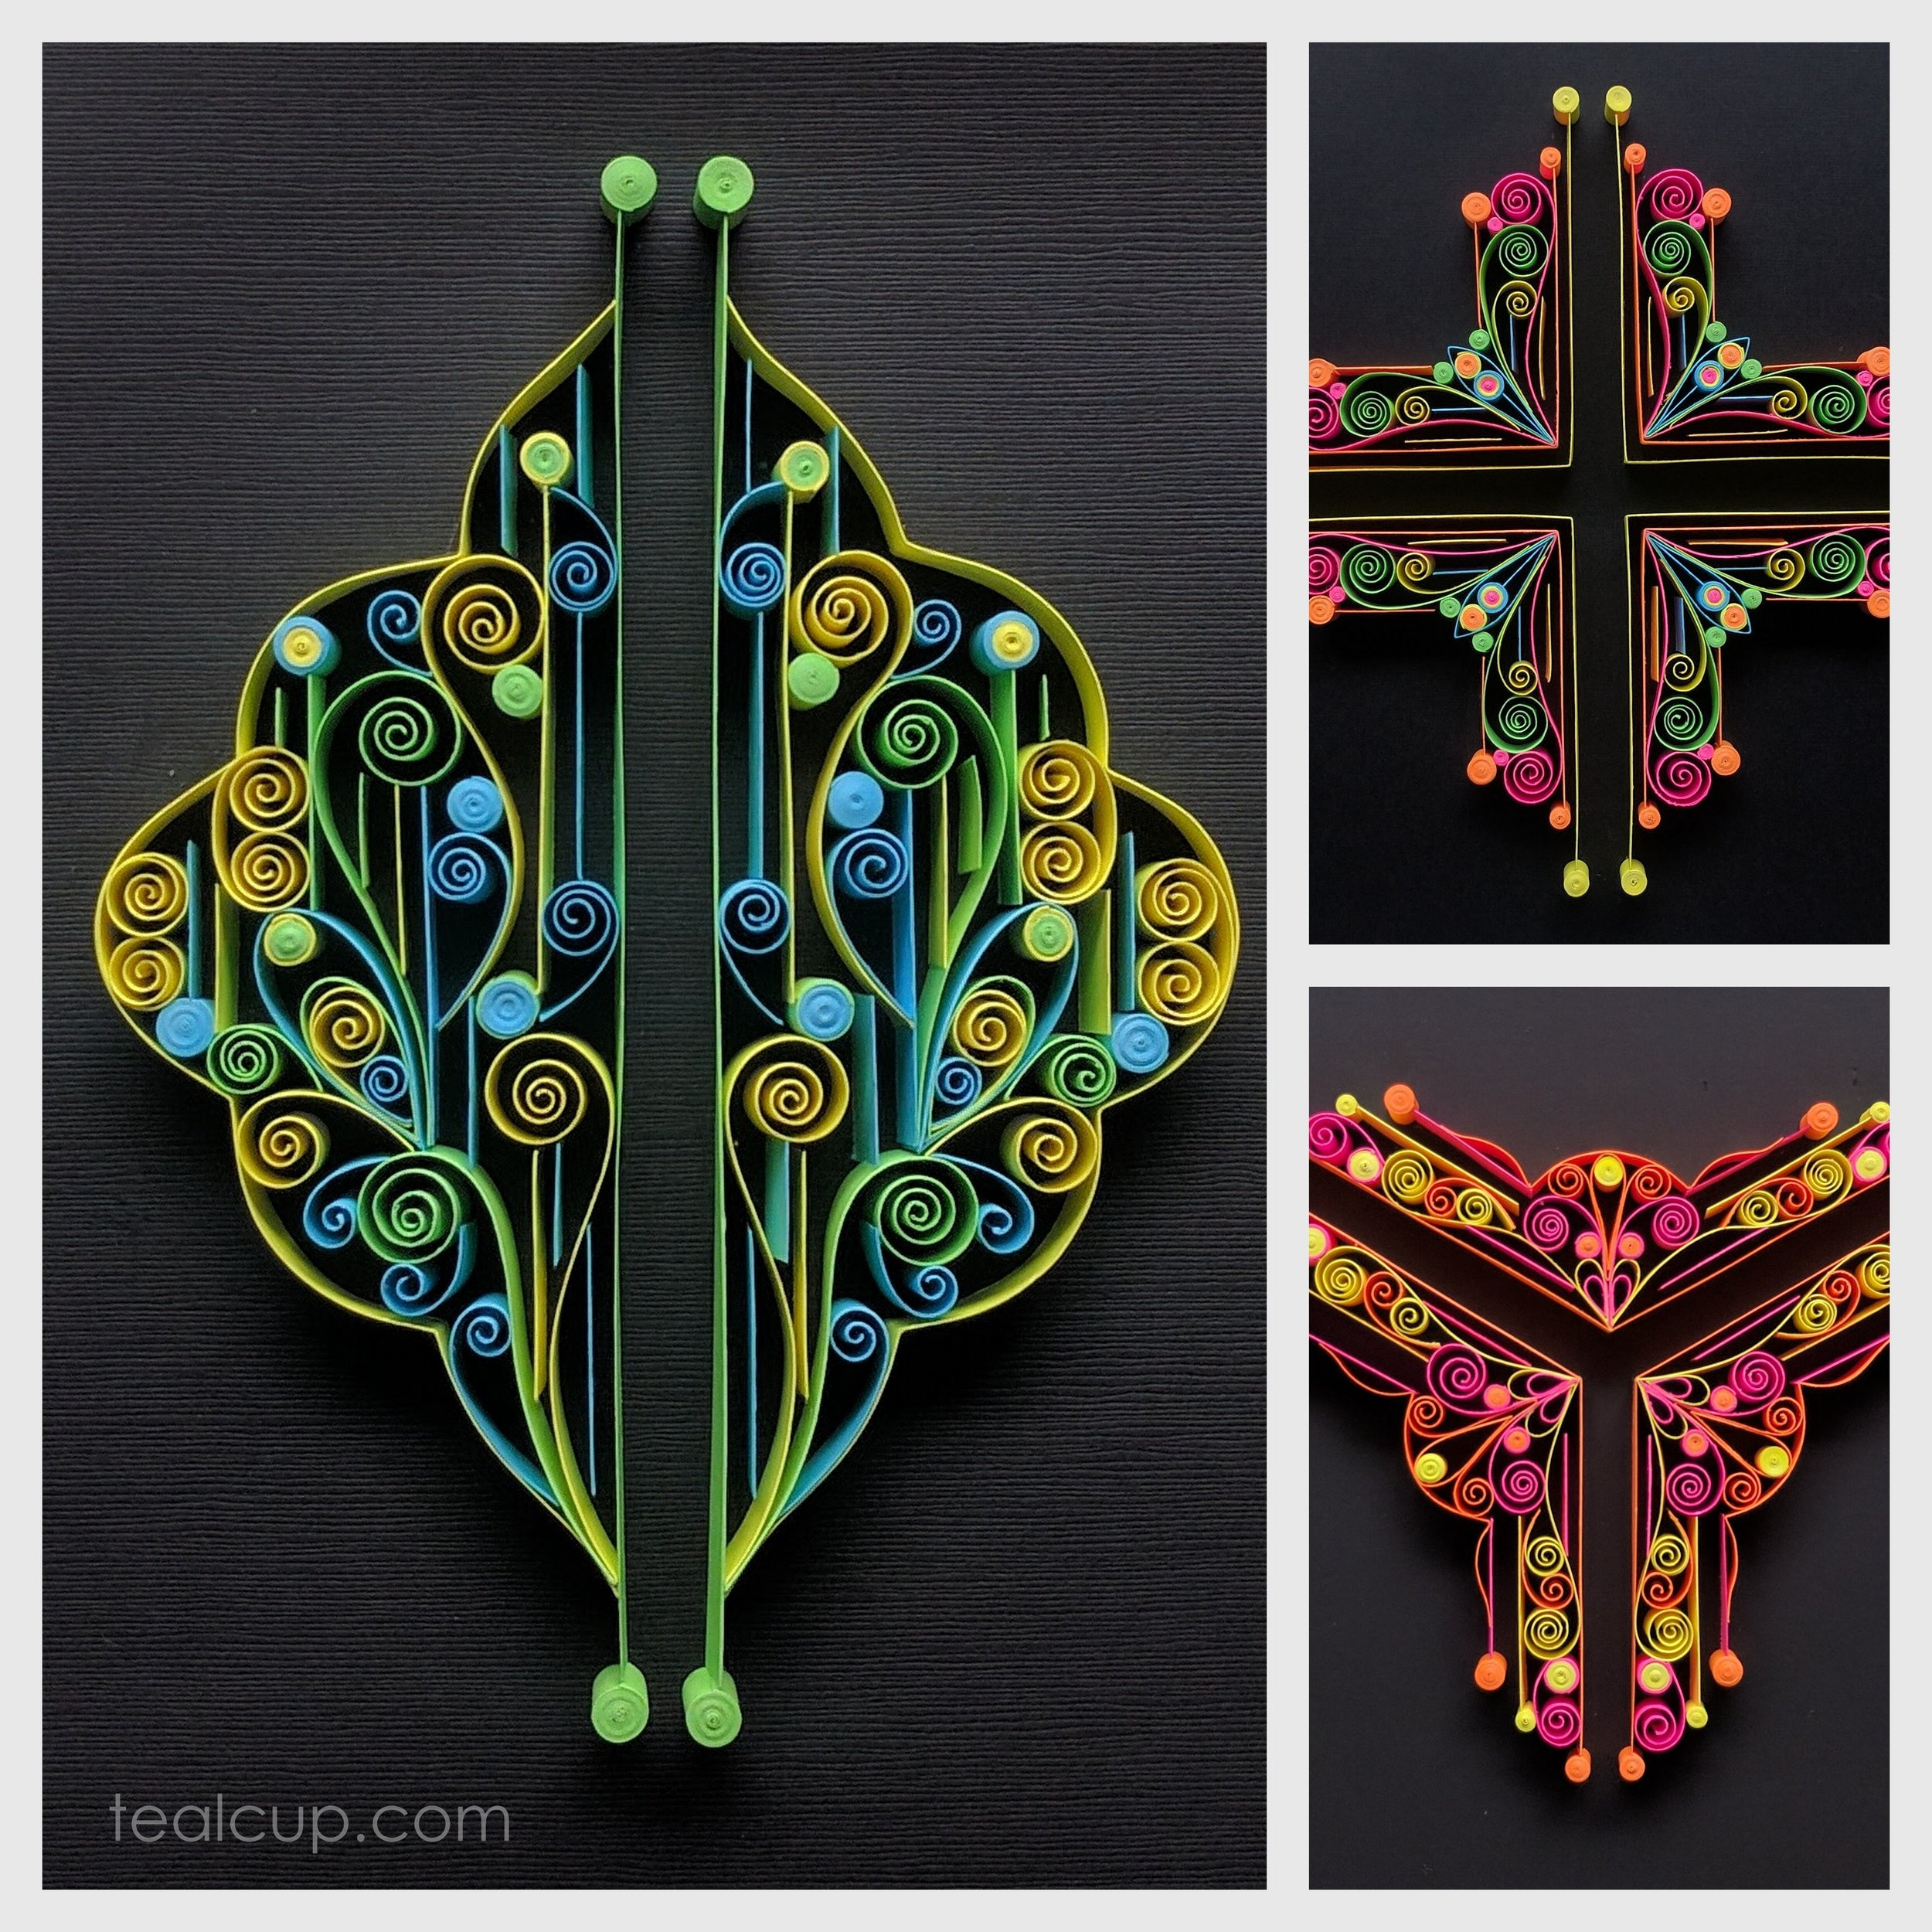 quilling 15 16 17-003.jpg